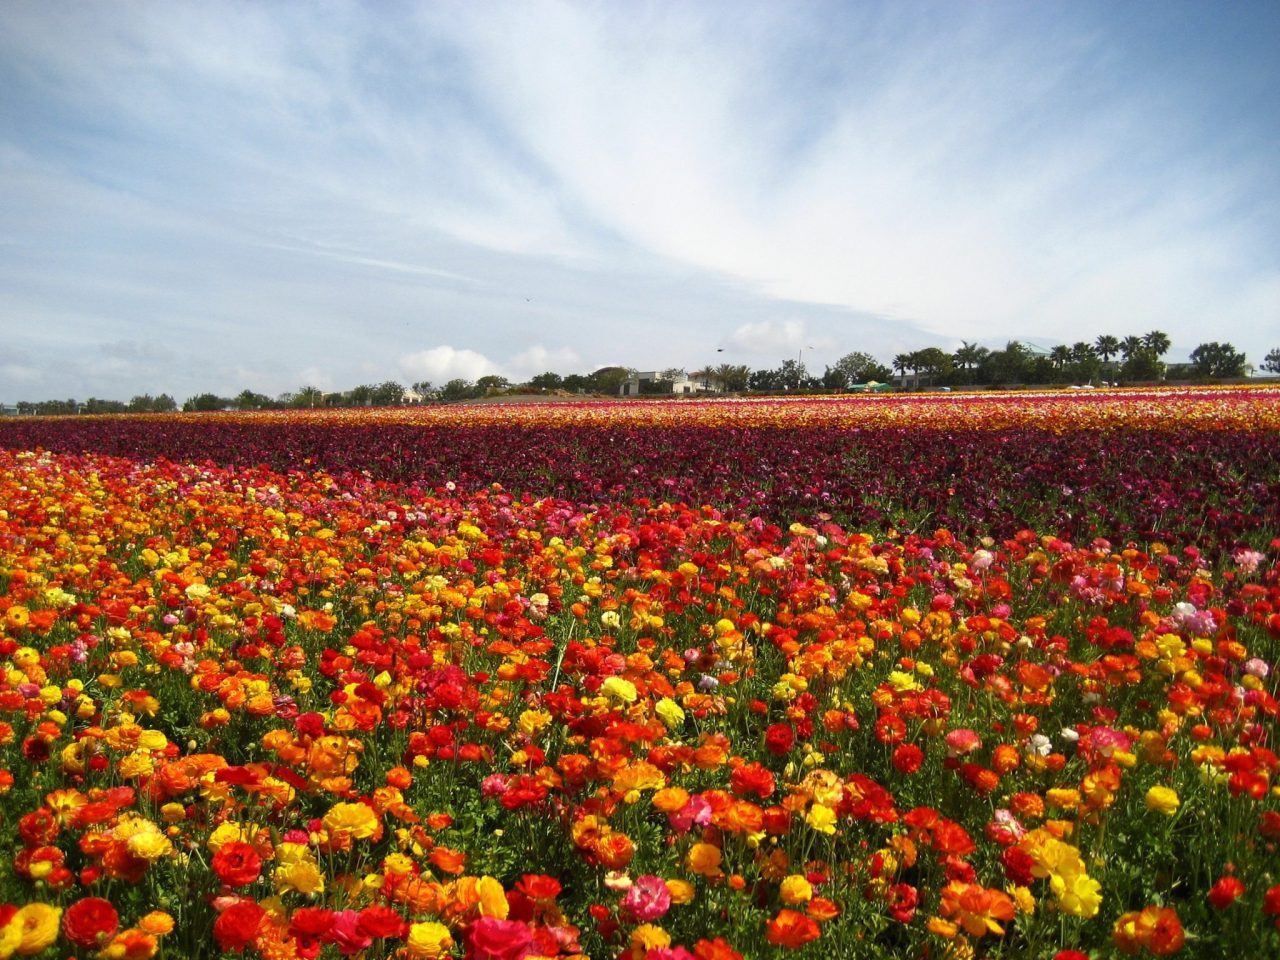 Visit The Flower Fields of Carlsbad, CA